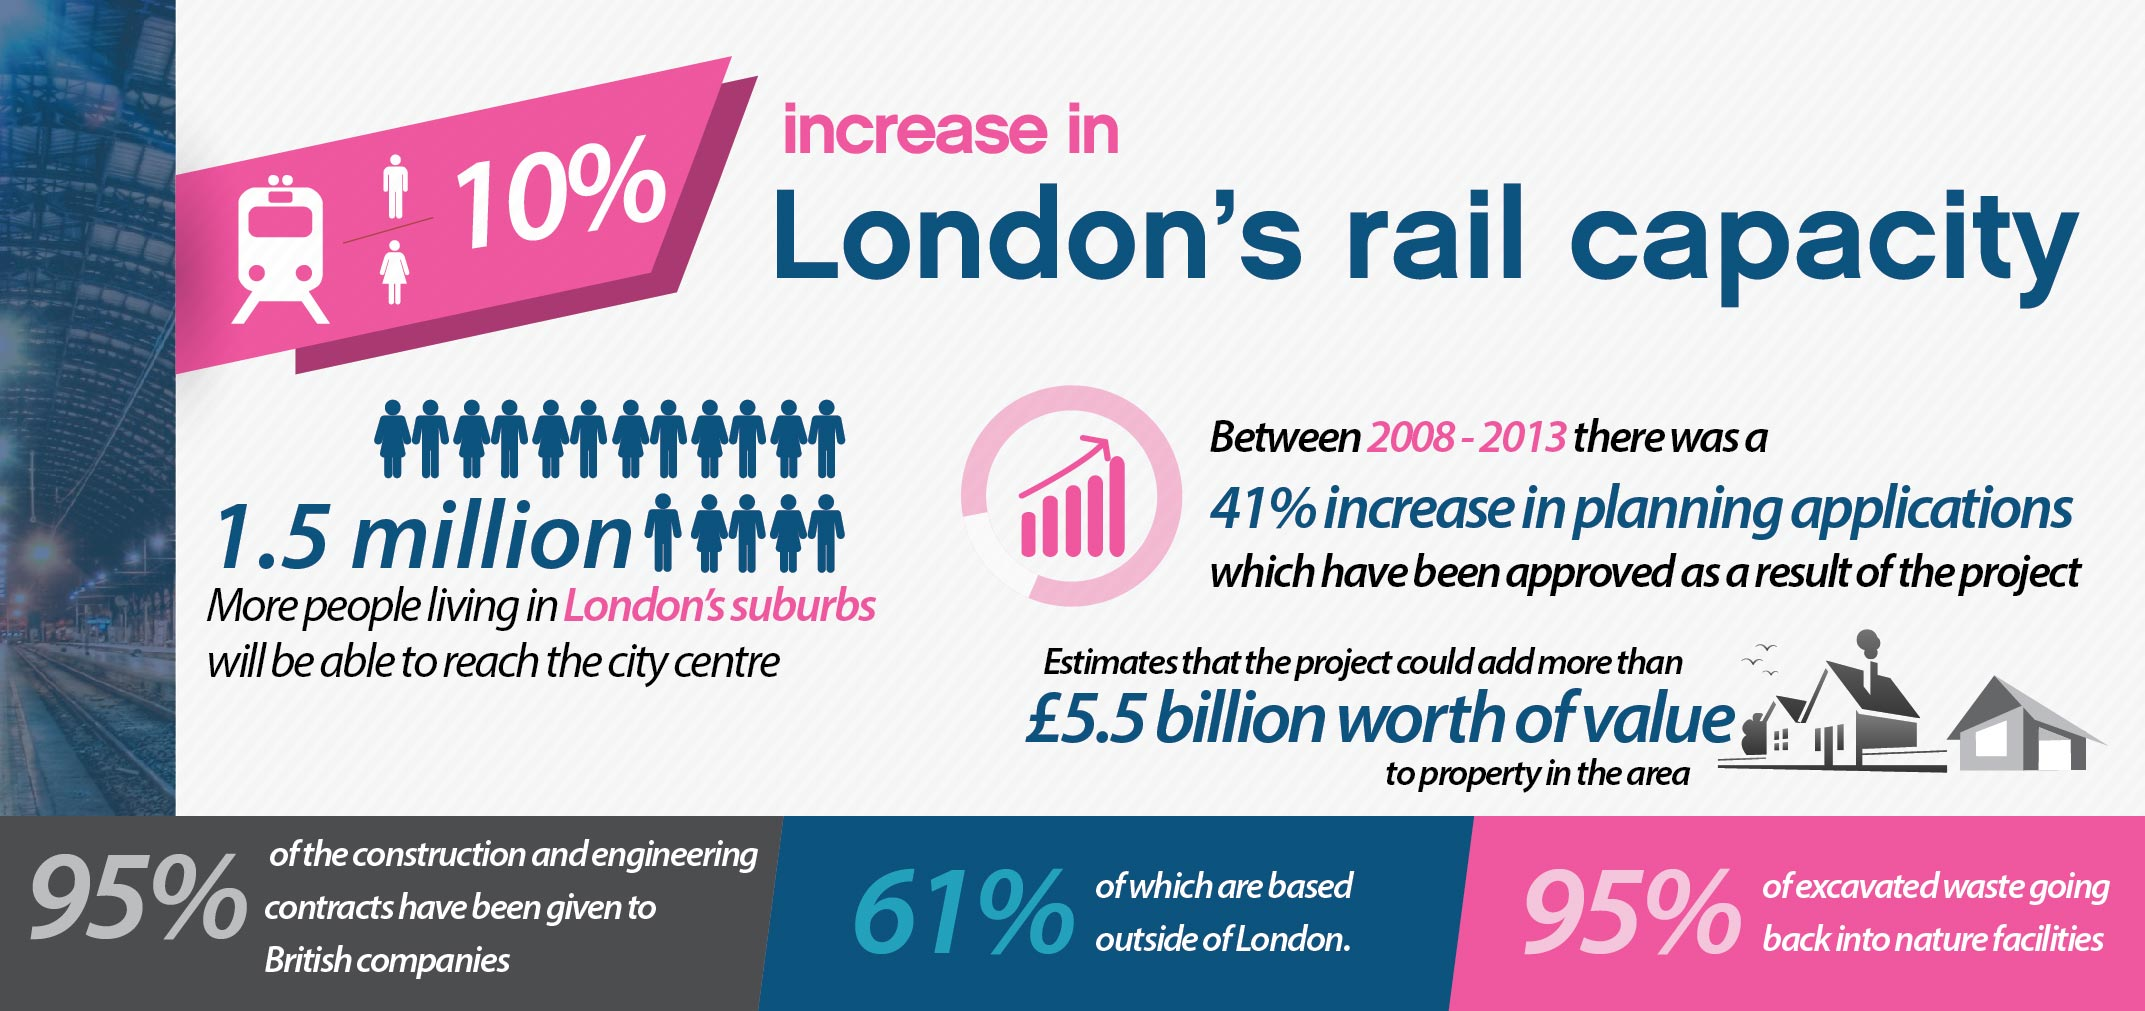 London's Rail Capacity - image